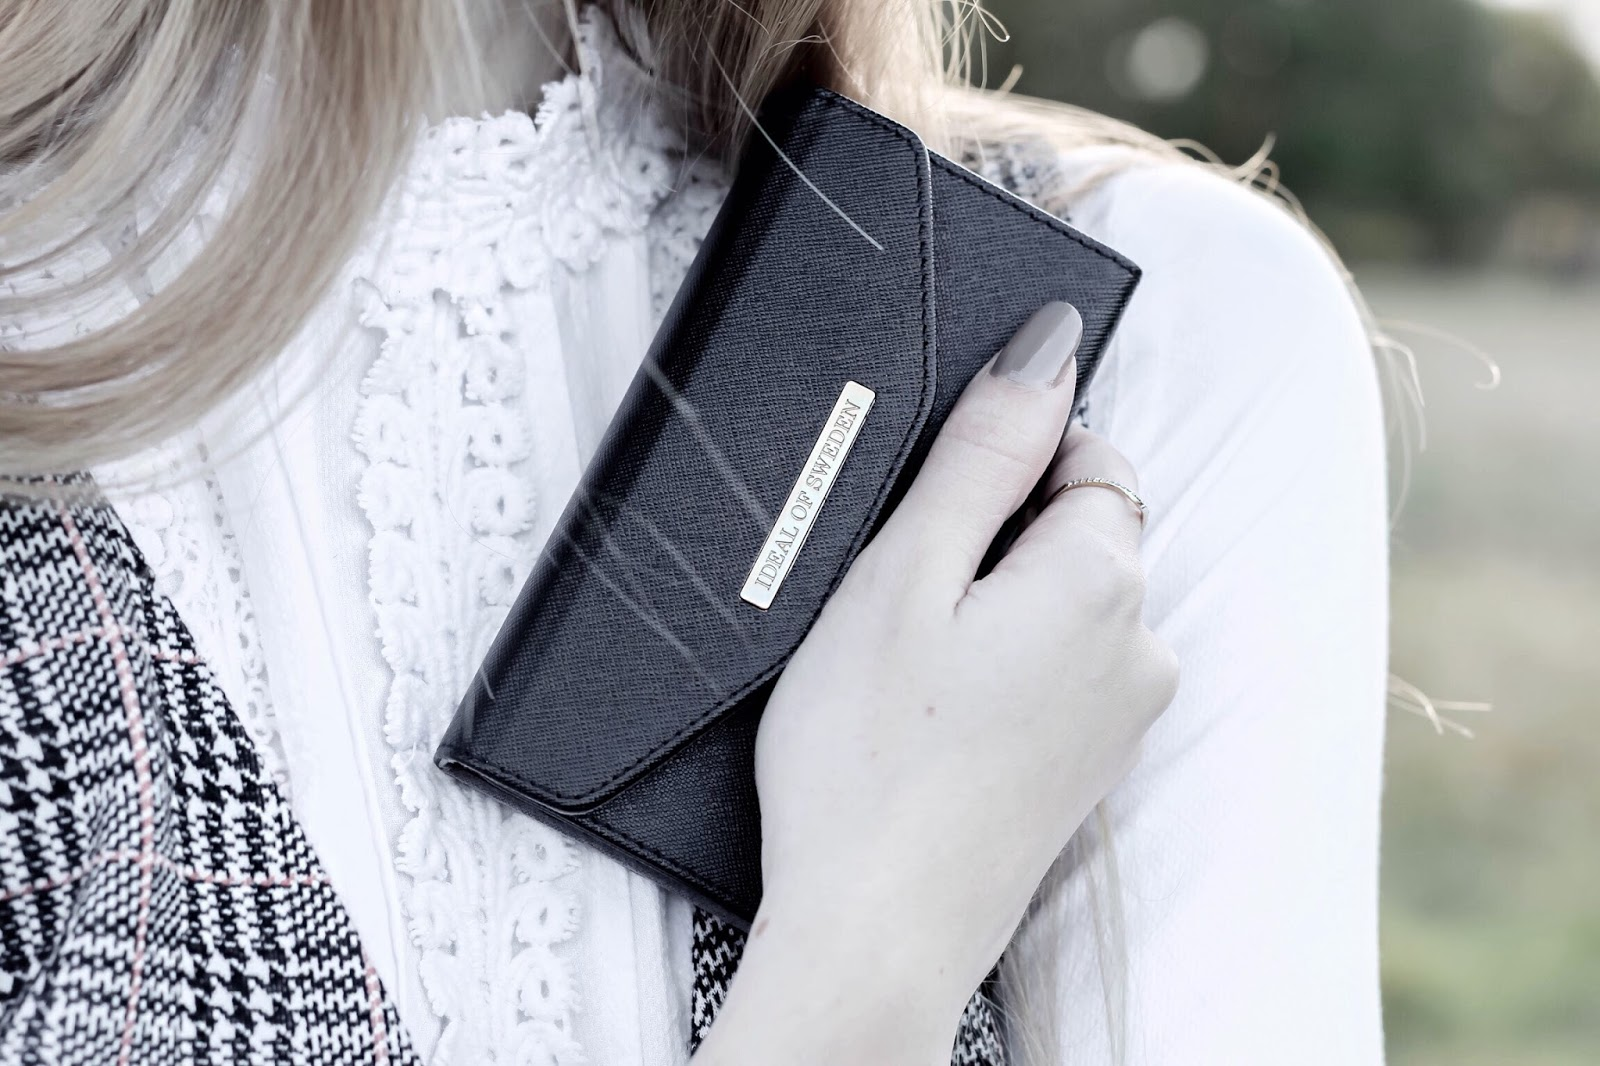 iDeal of Sweden Black Mayfair Clutch Blog Review